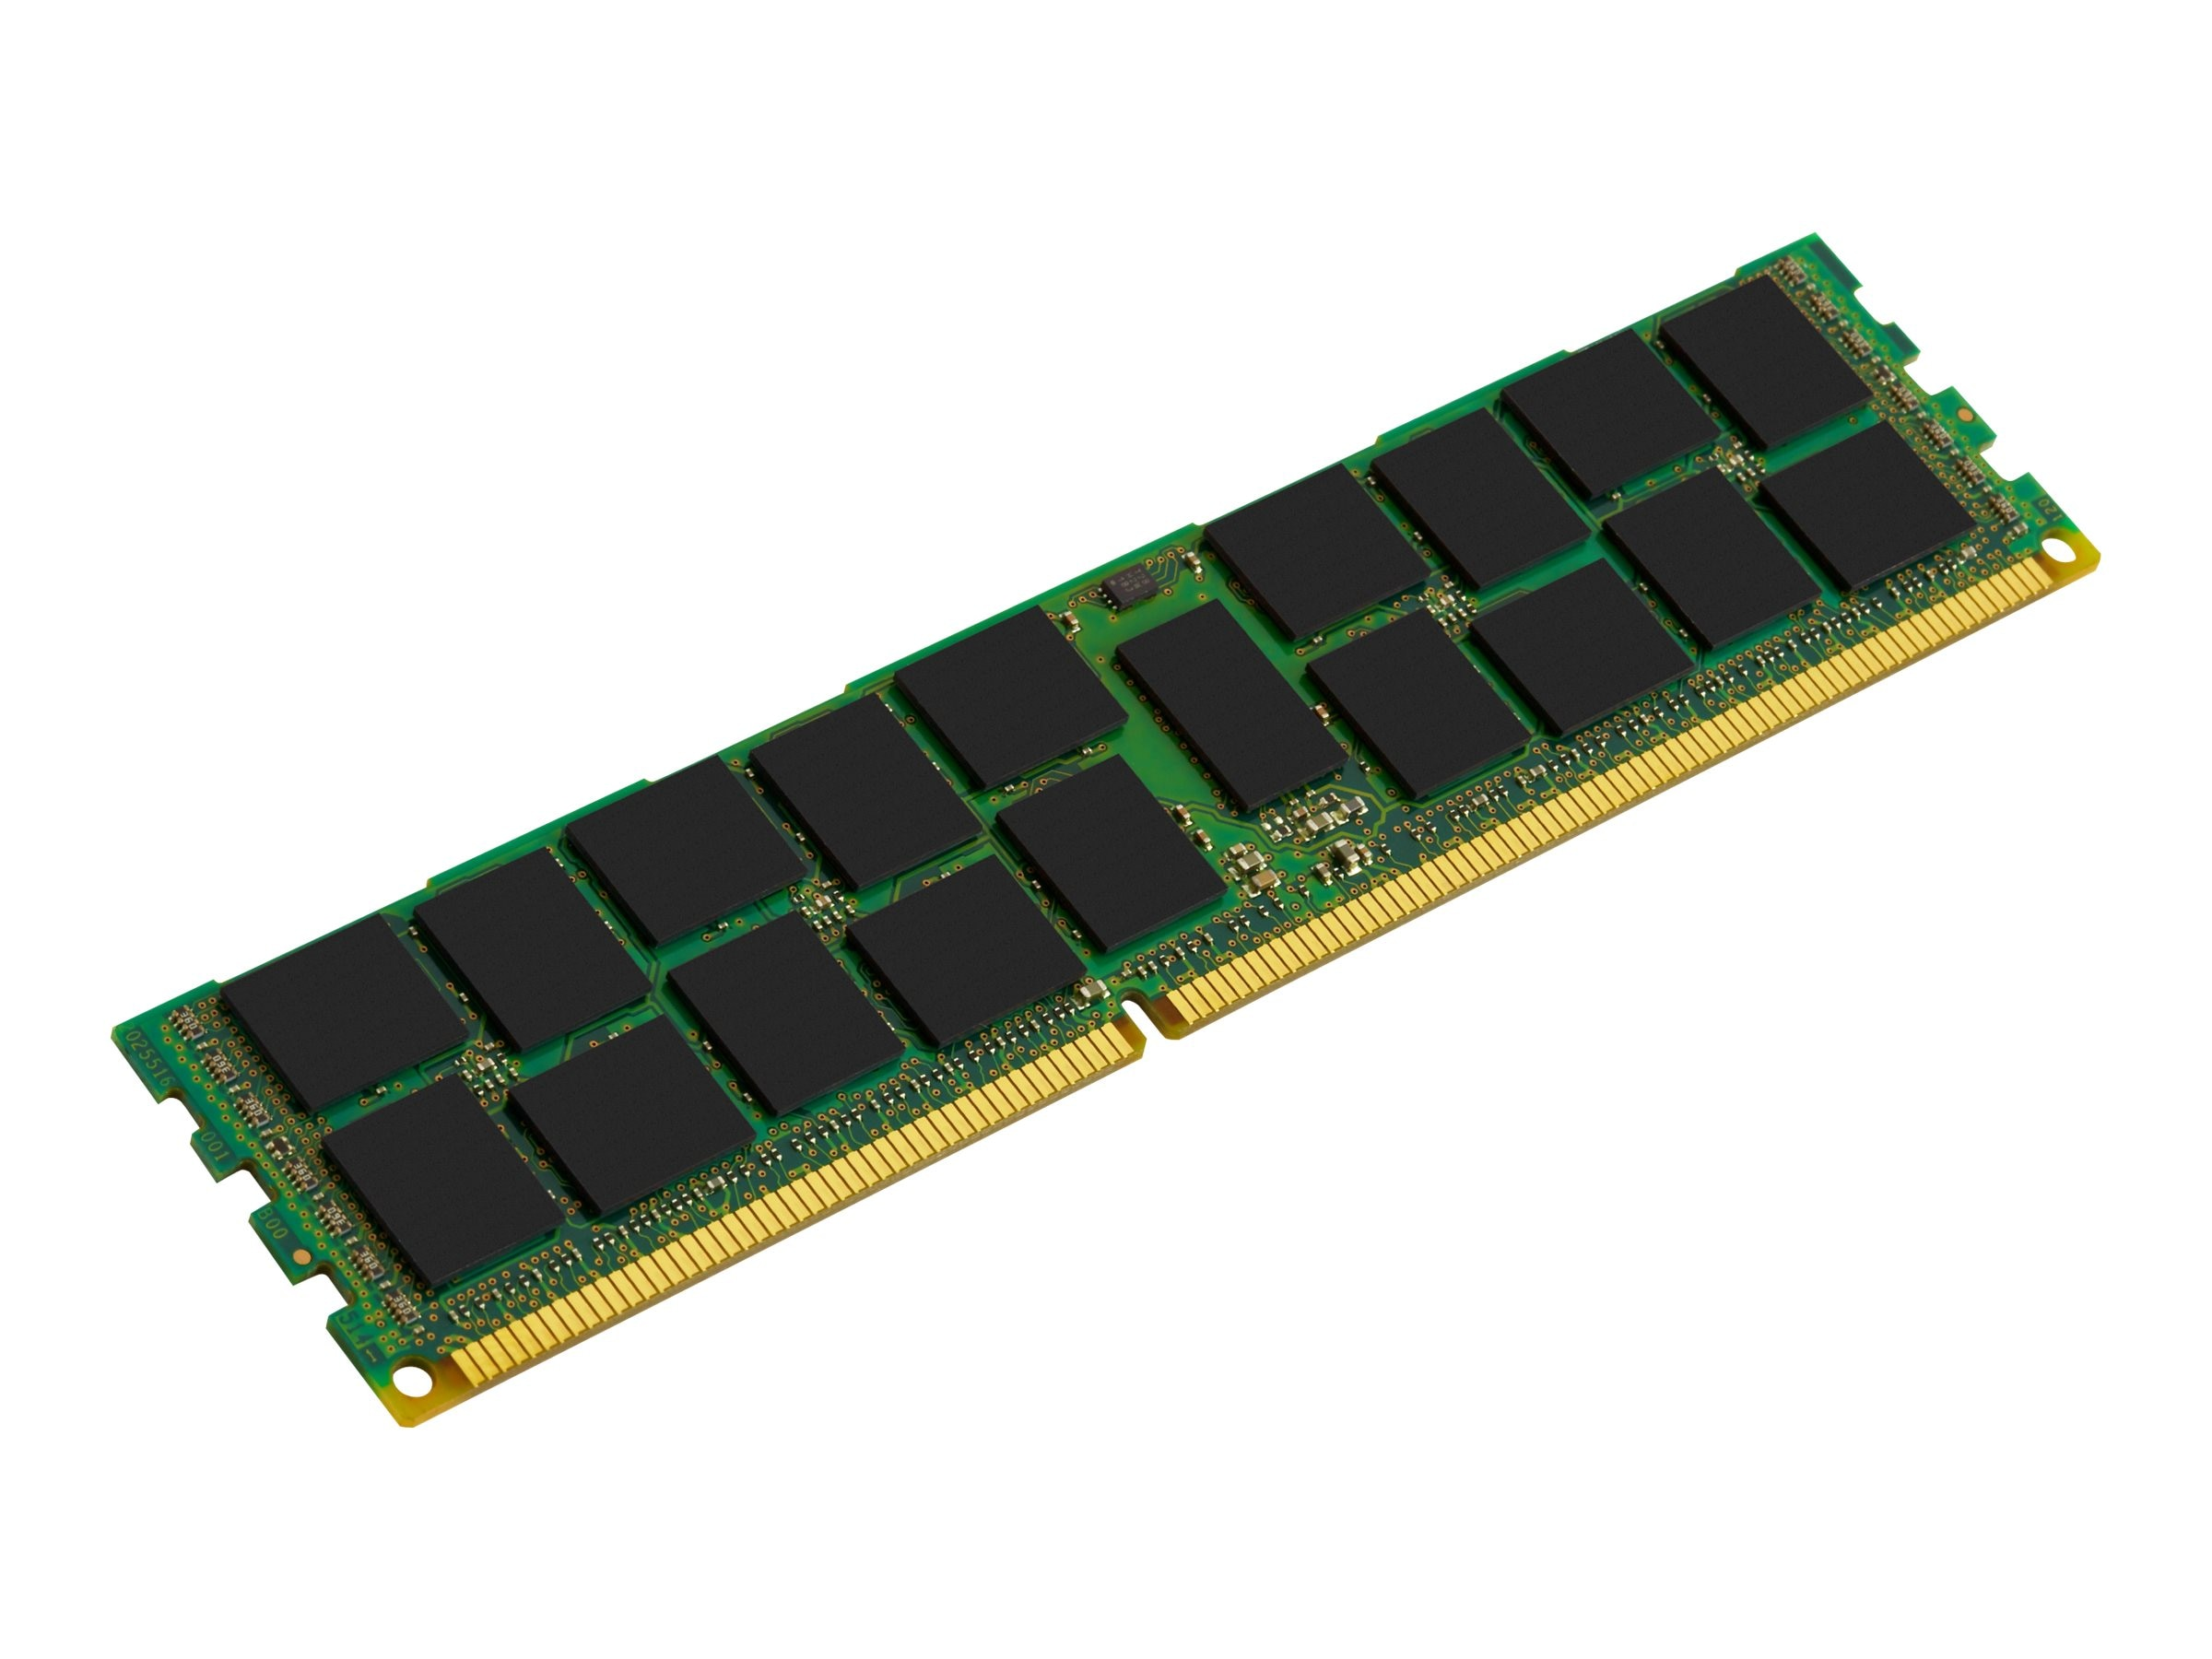 Kingston 16GB PC3-12800 DDR3 SDRAM Upgrade Module